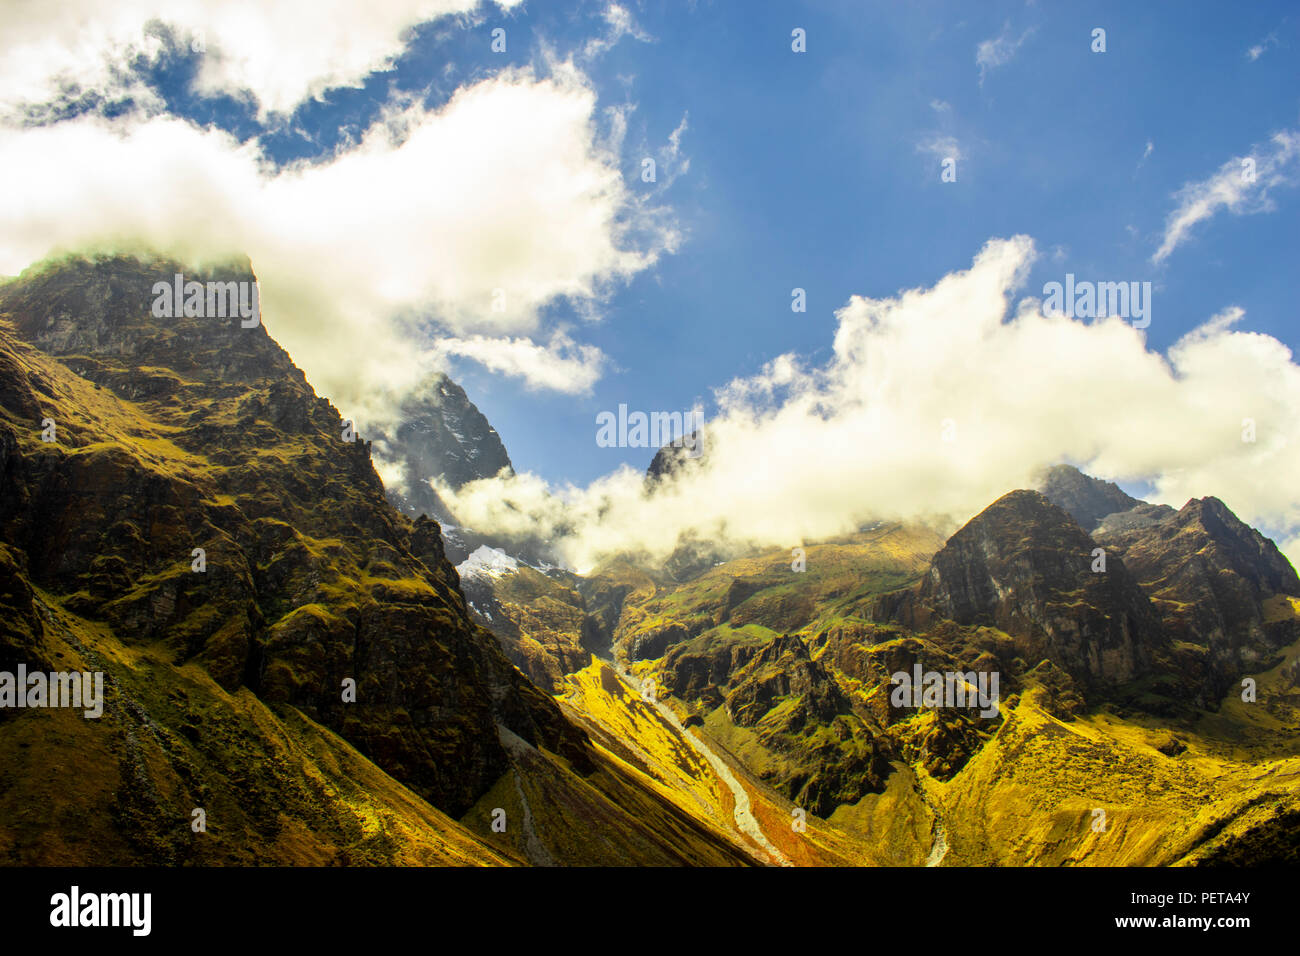 Mighty mountains in traveling - Stock Image